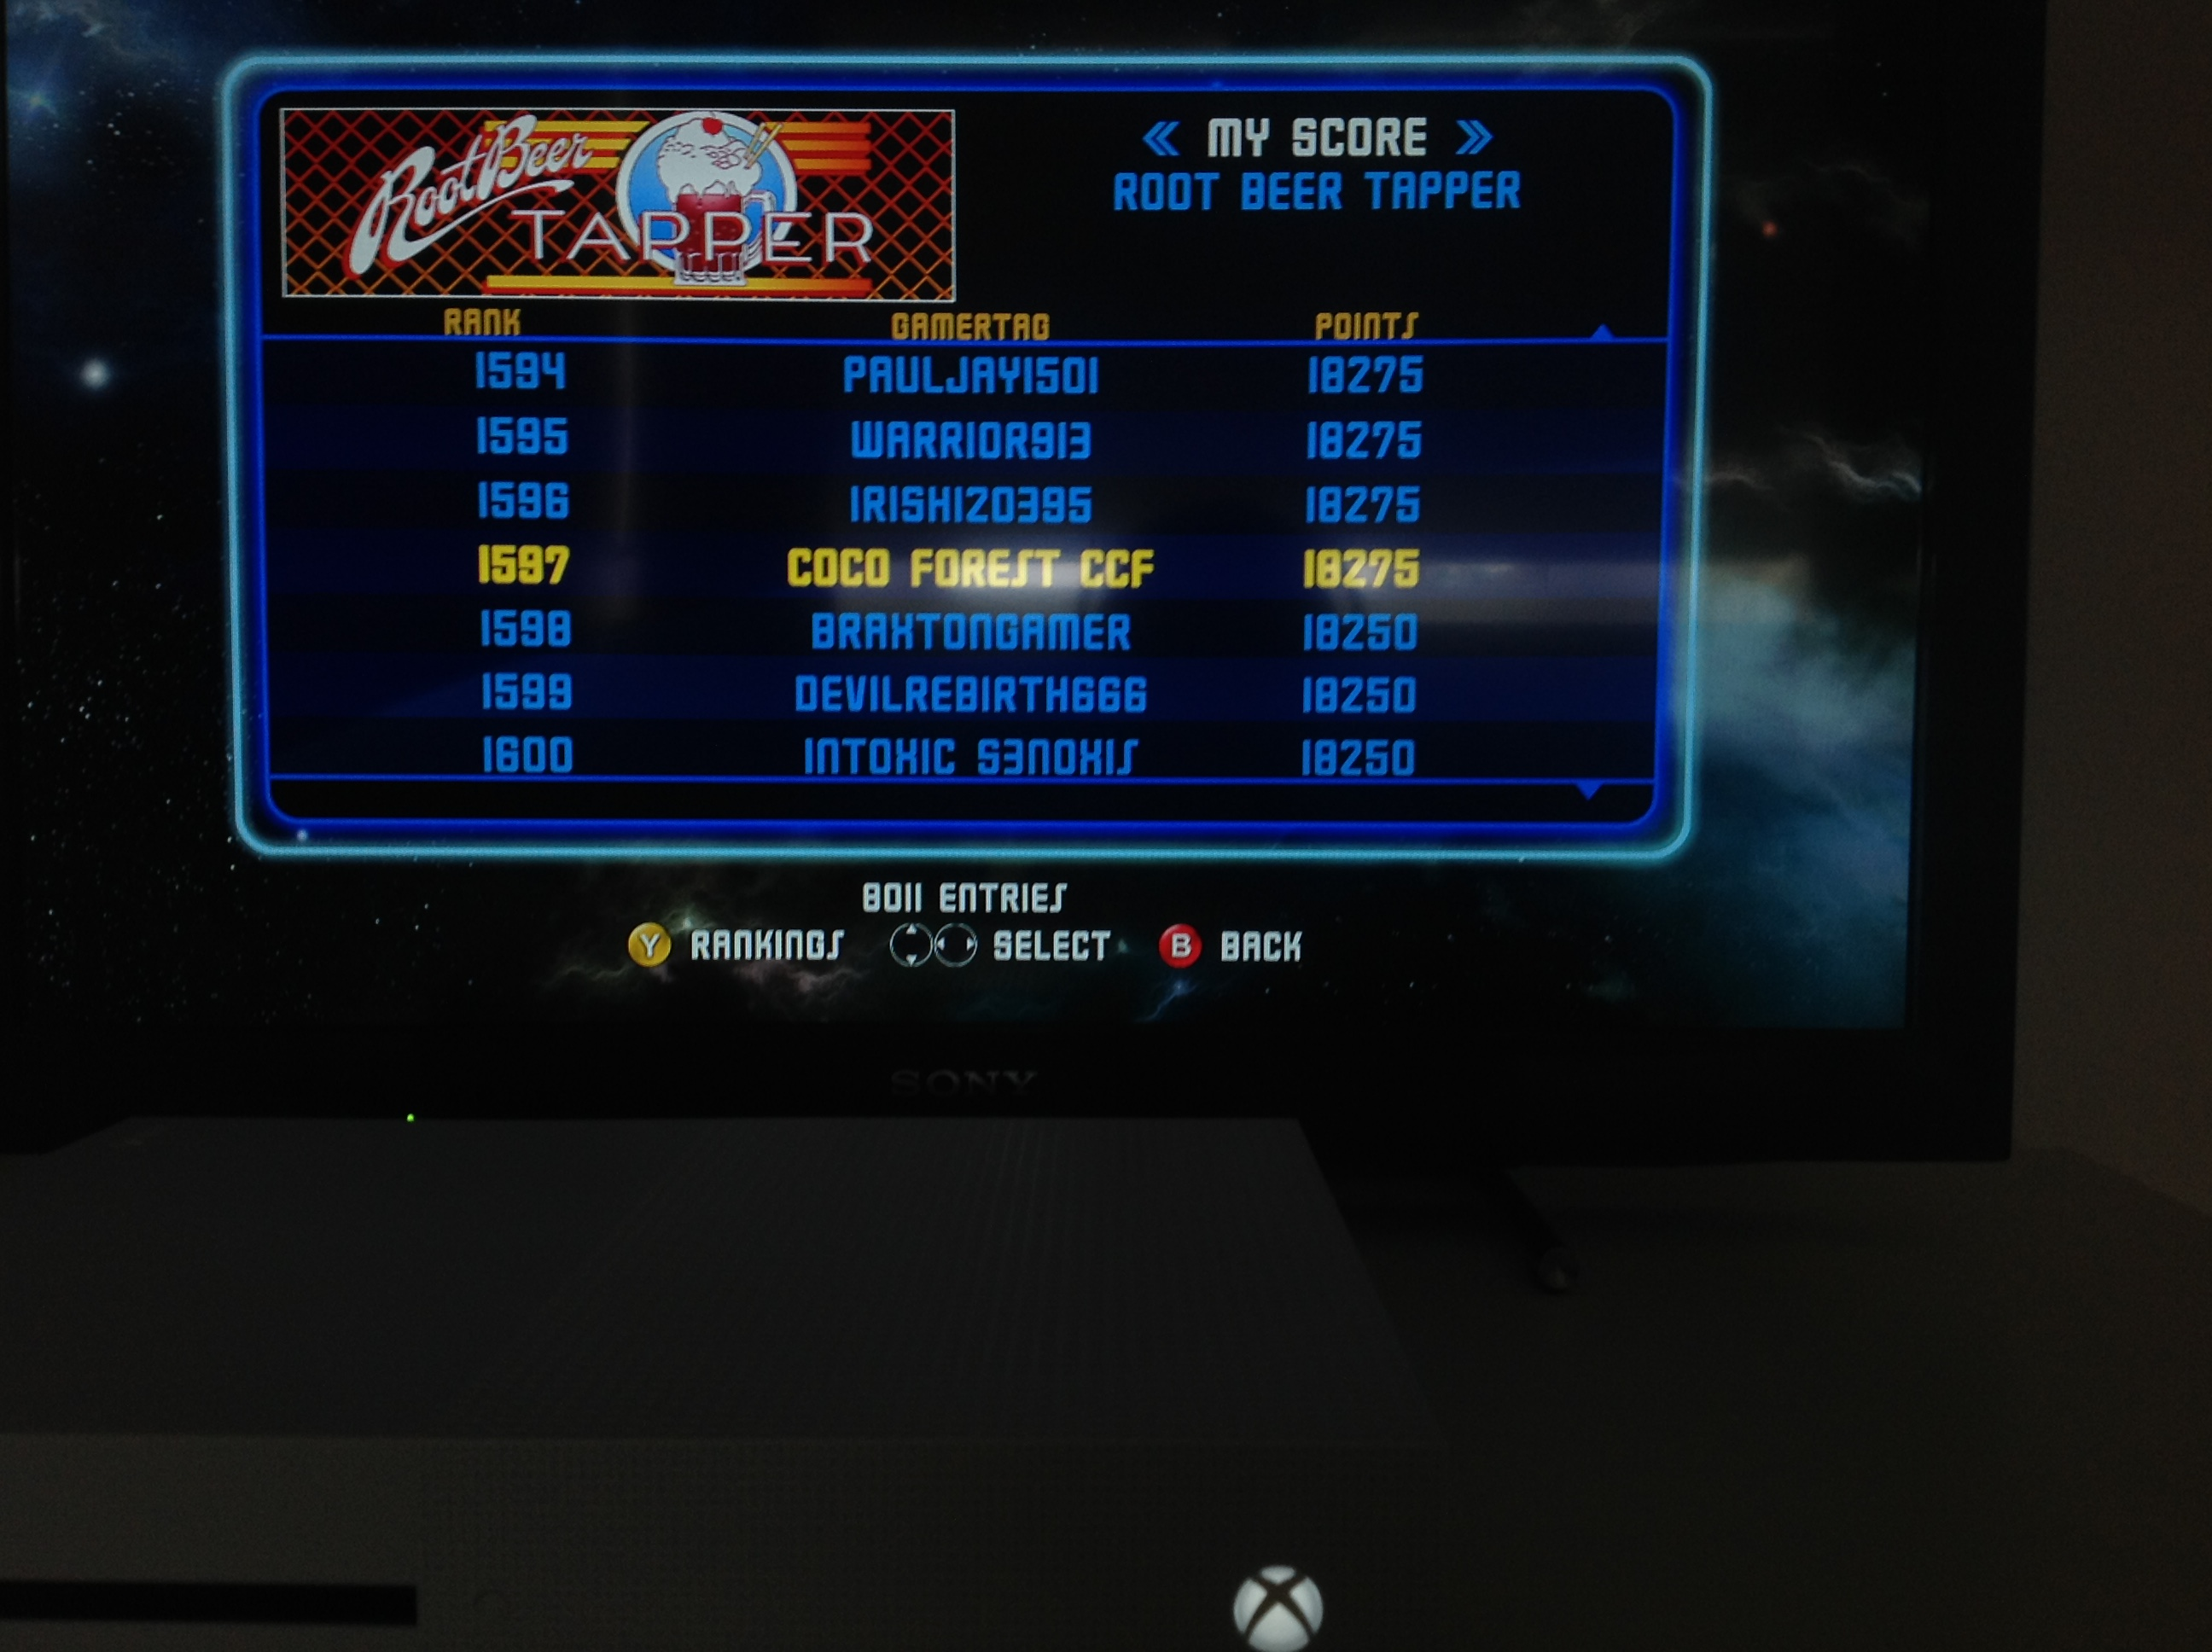 CoCoForest: Midway Arcade Origins: Root Beer Tapper (Xbox 360) 18,275 points on 2019-05-27 02:59:29